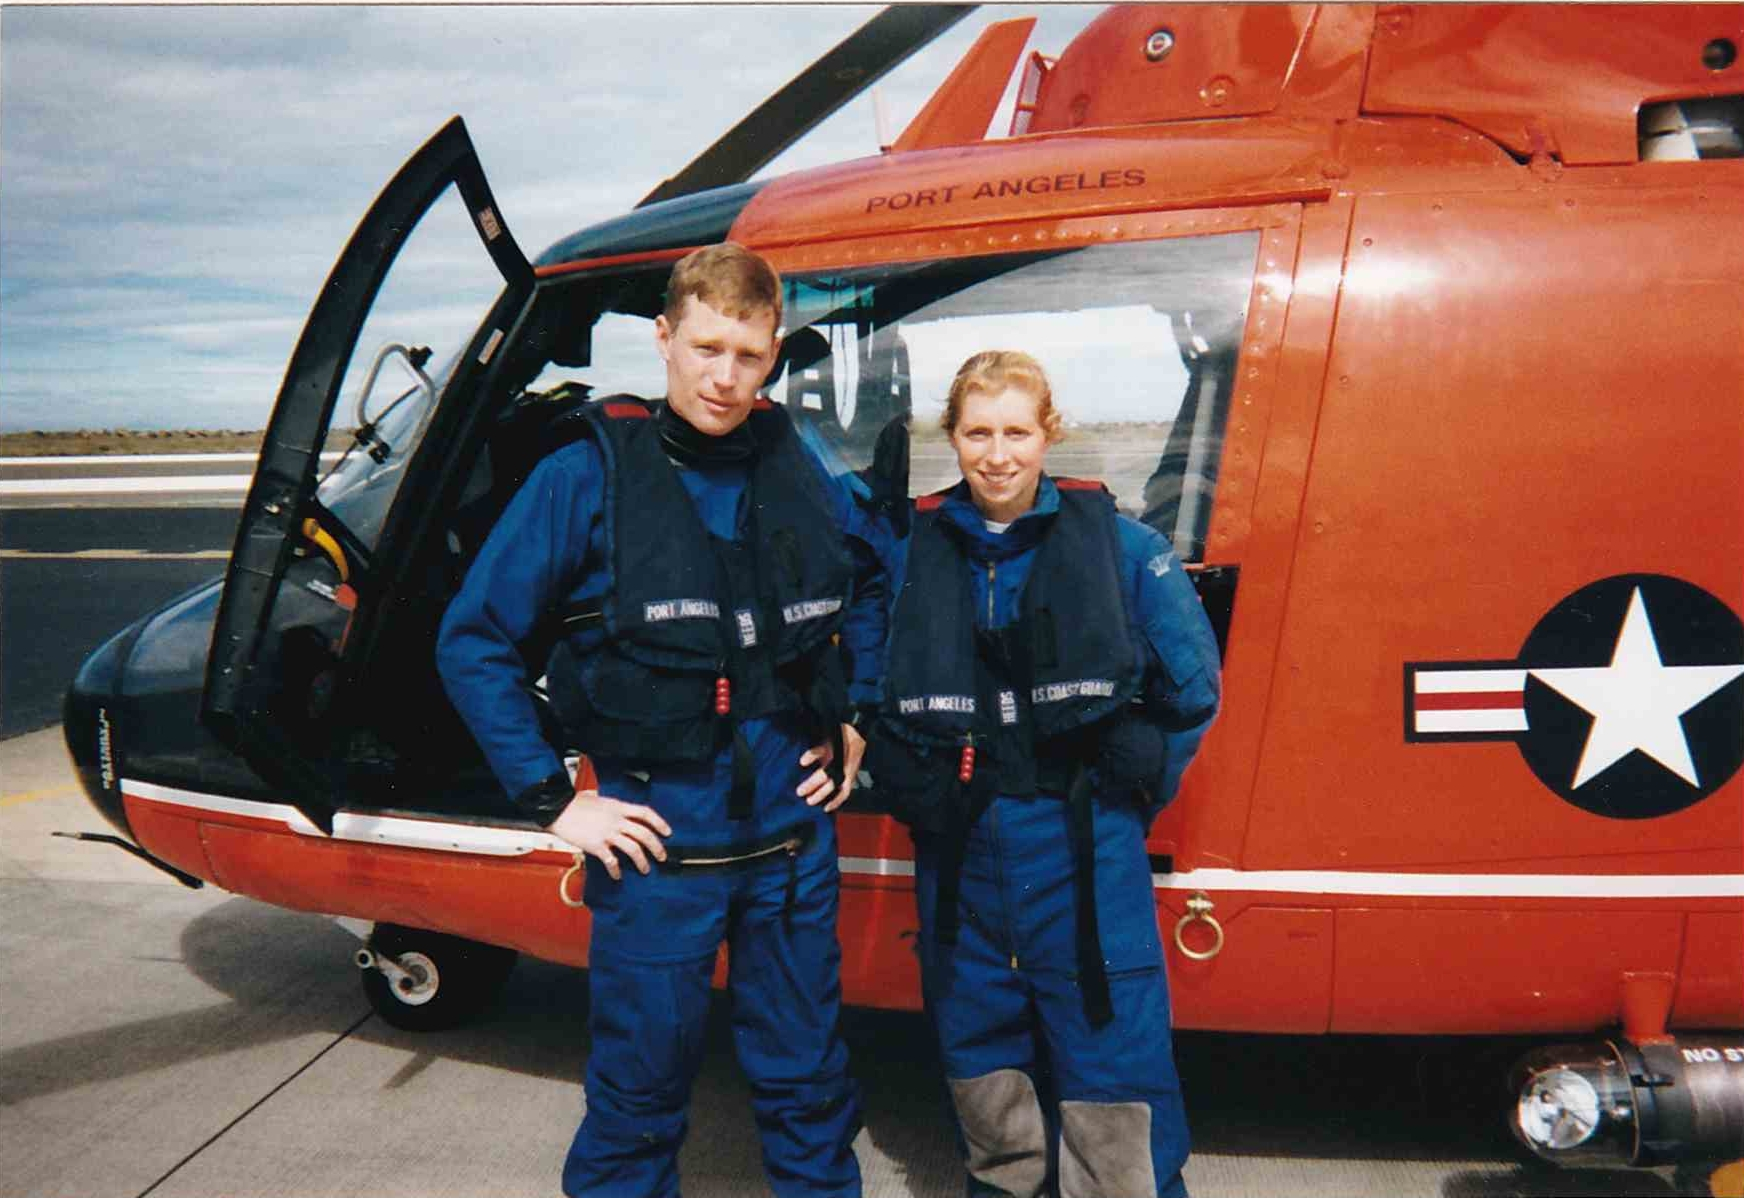 Mark and Joanna, circa 2000, during Mark's first tour at Coast Guard Air Station Port Angeles.